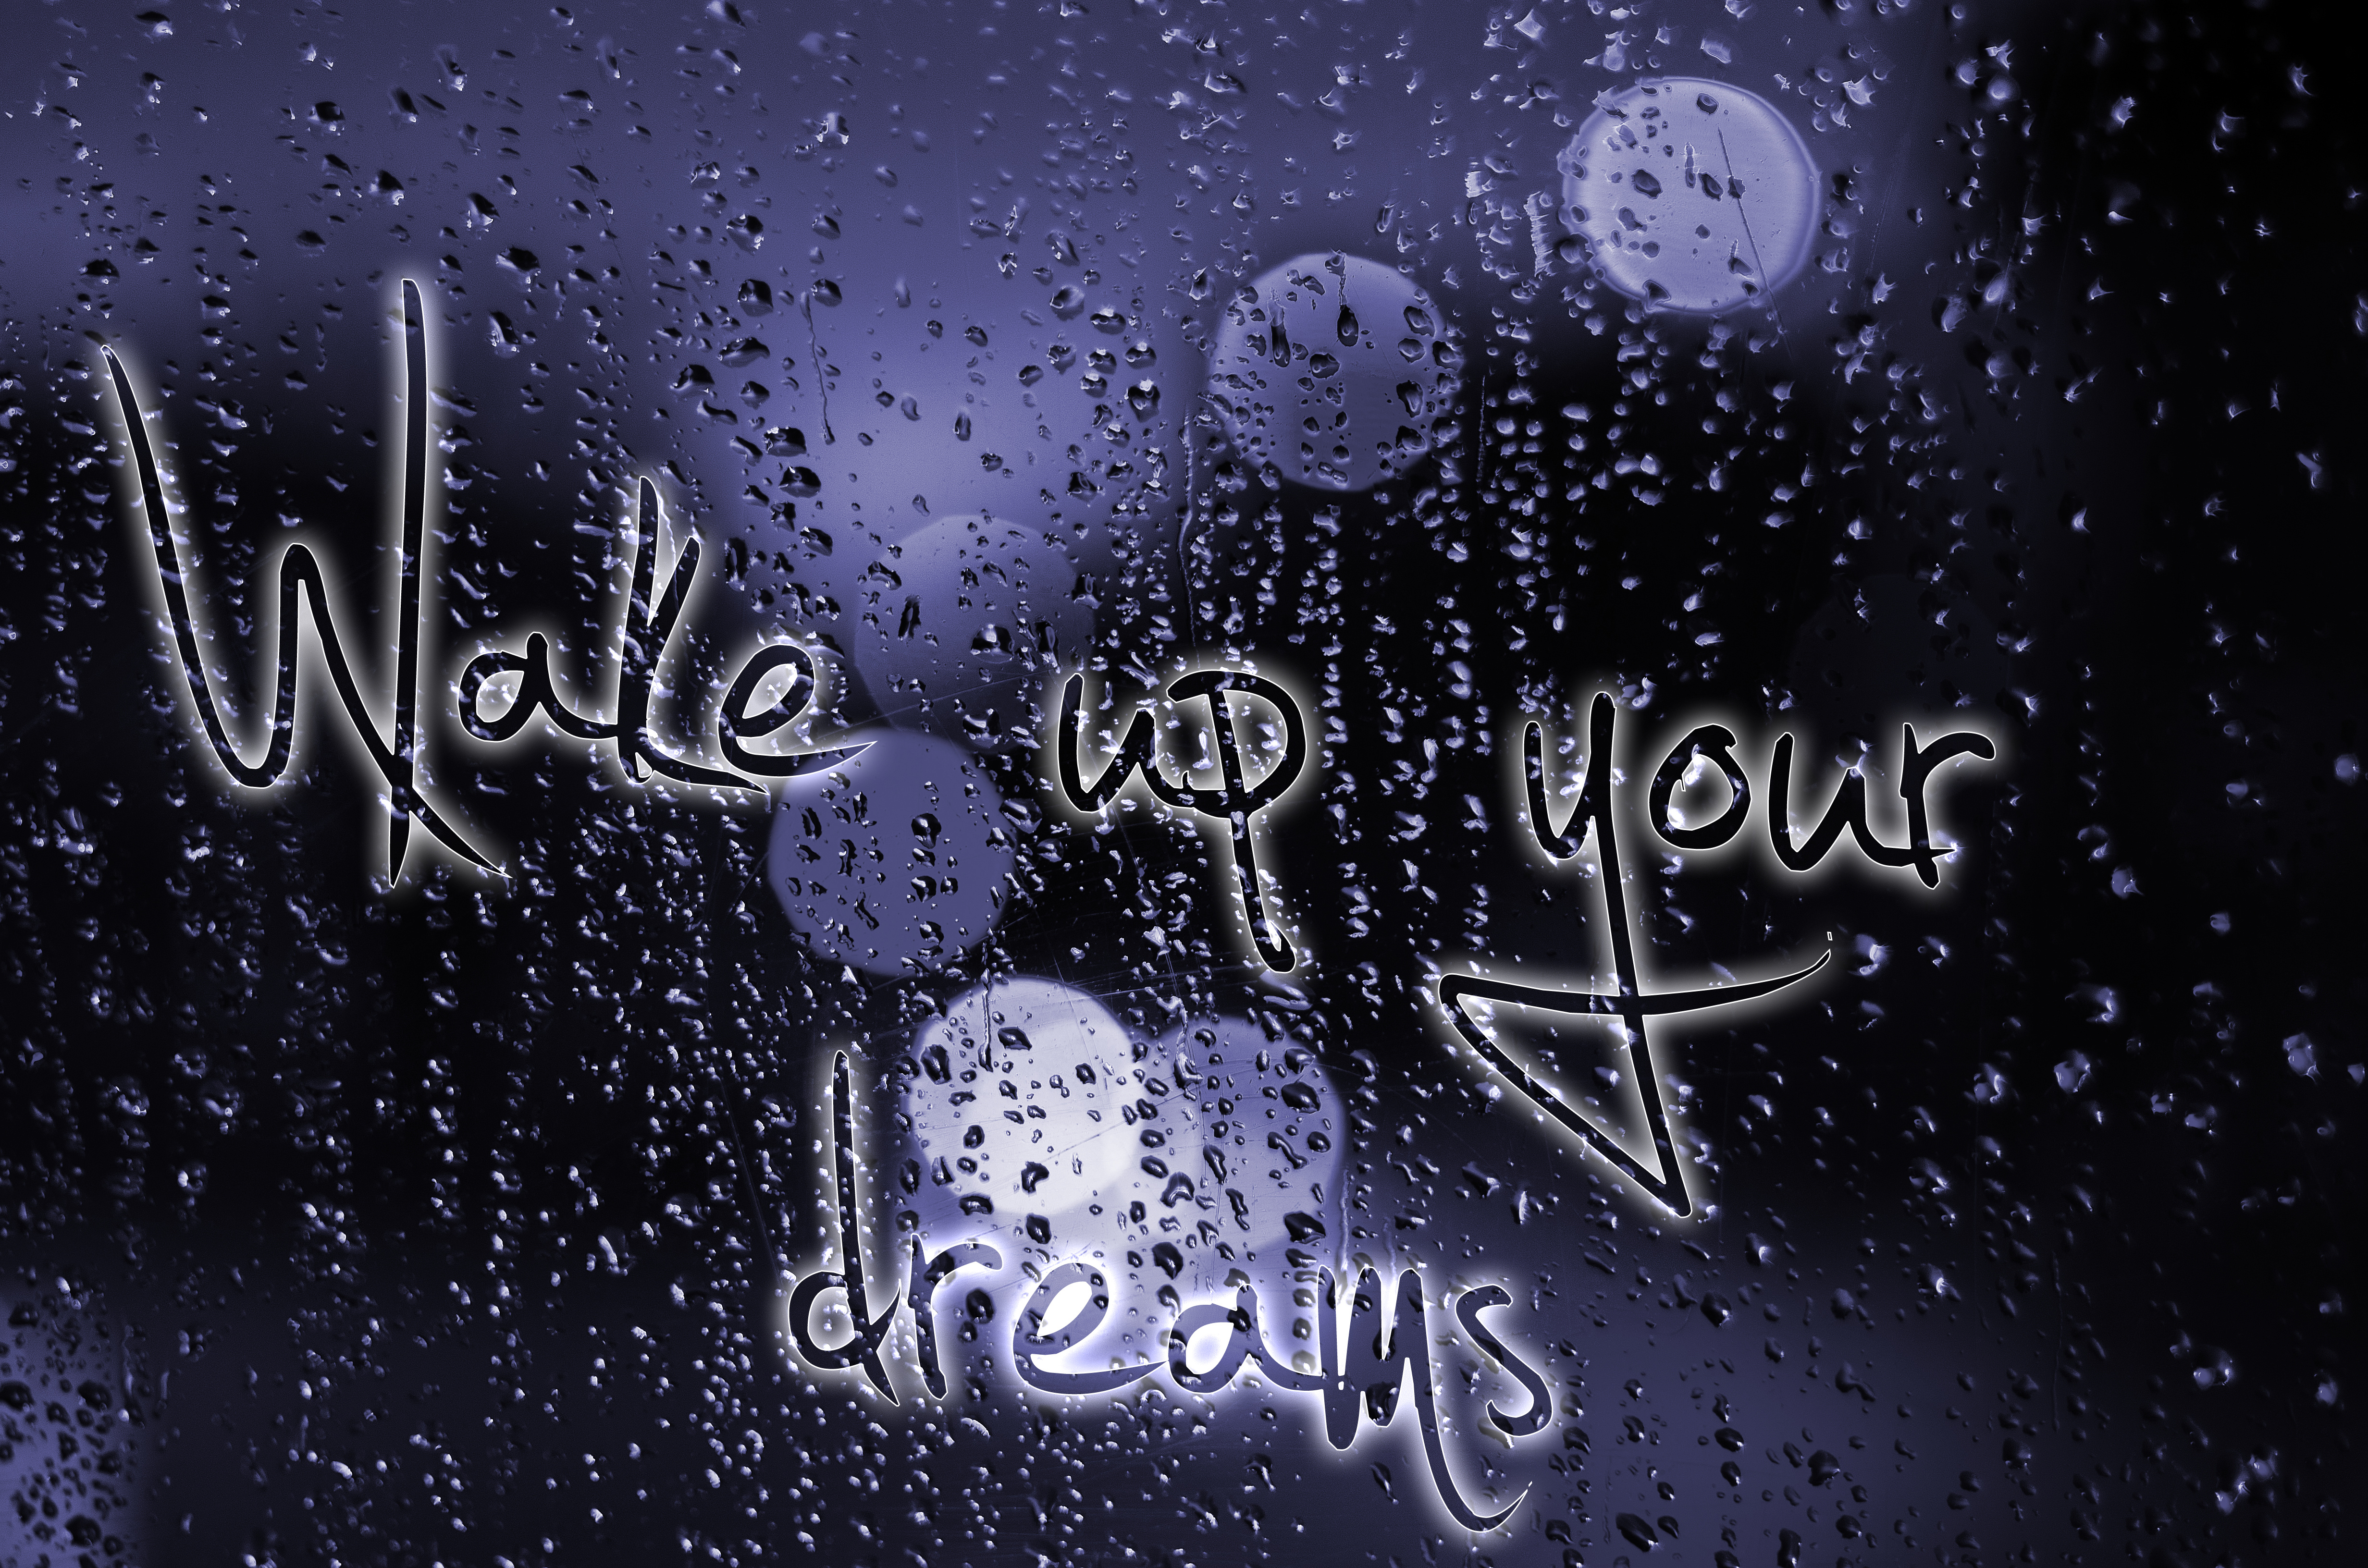 Sentence Wake up your dreams written on a wet glass. Night city life through windscreen: darkness and rain.